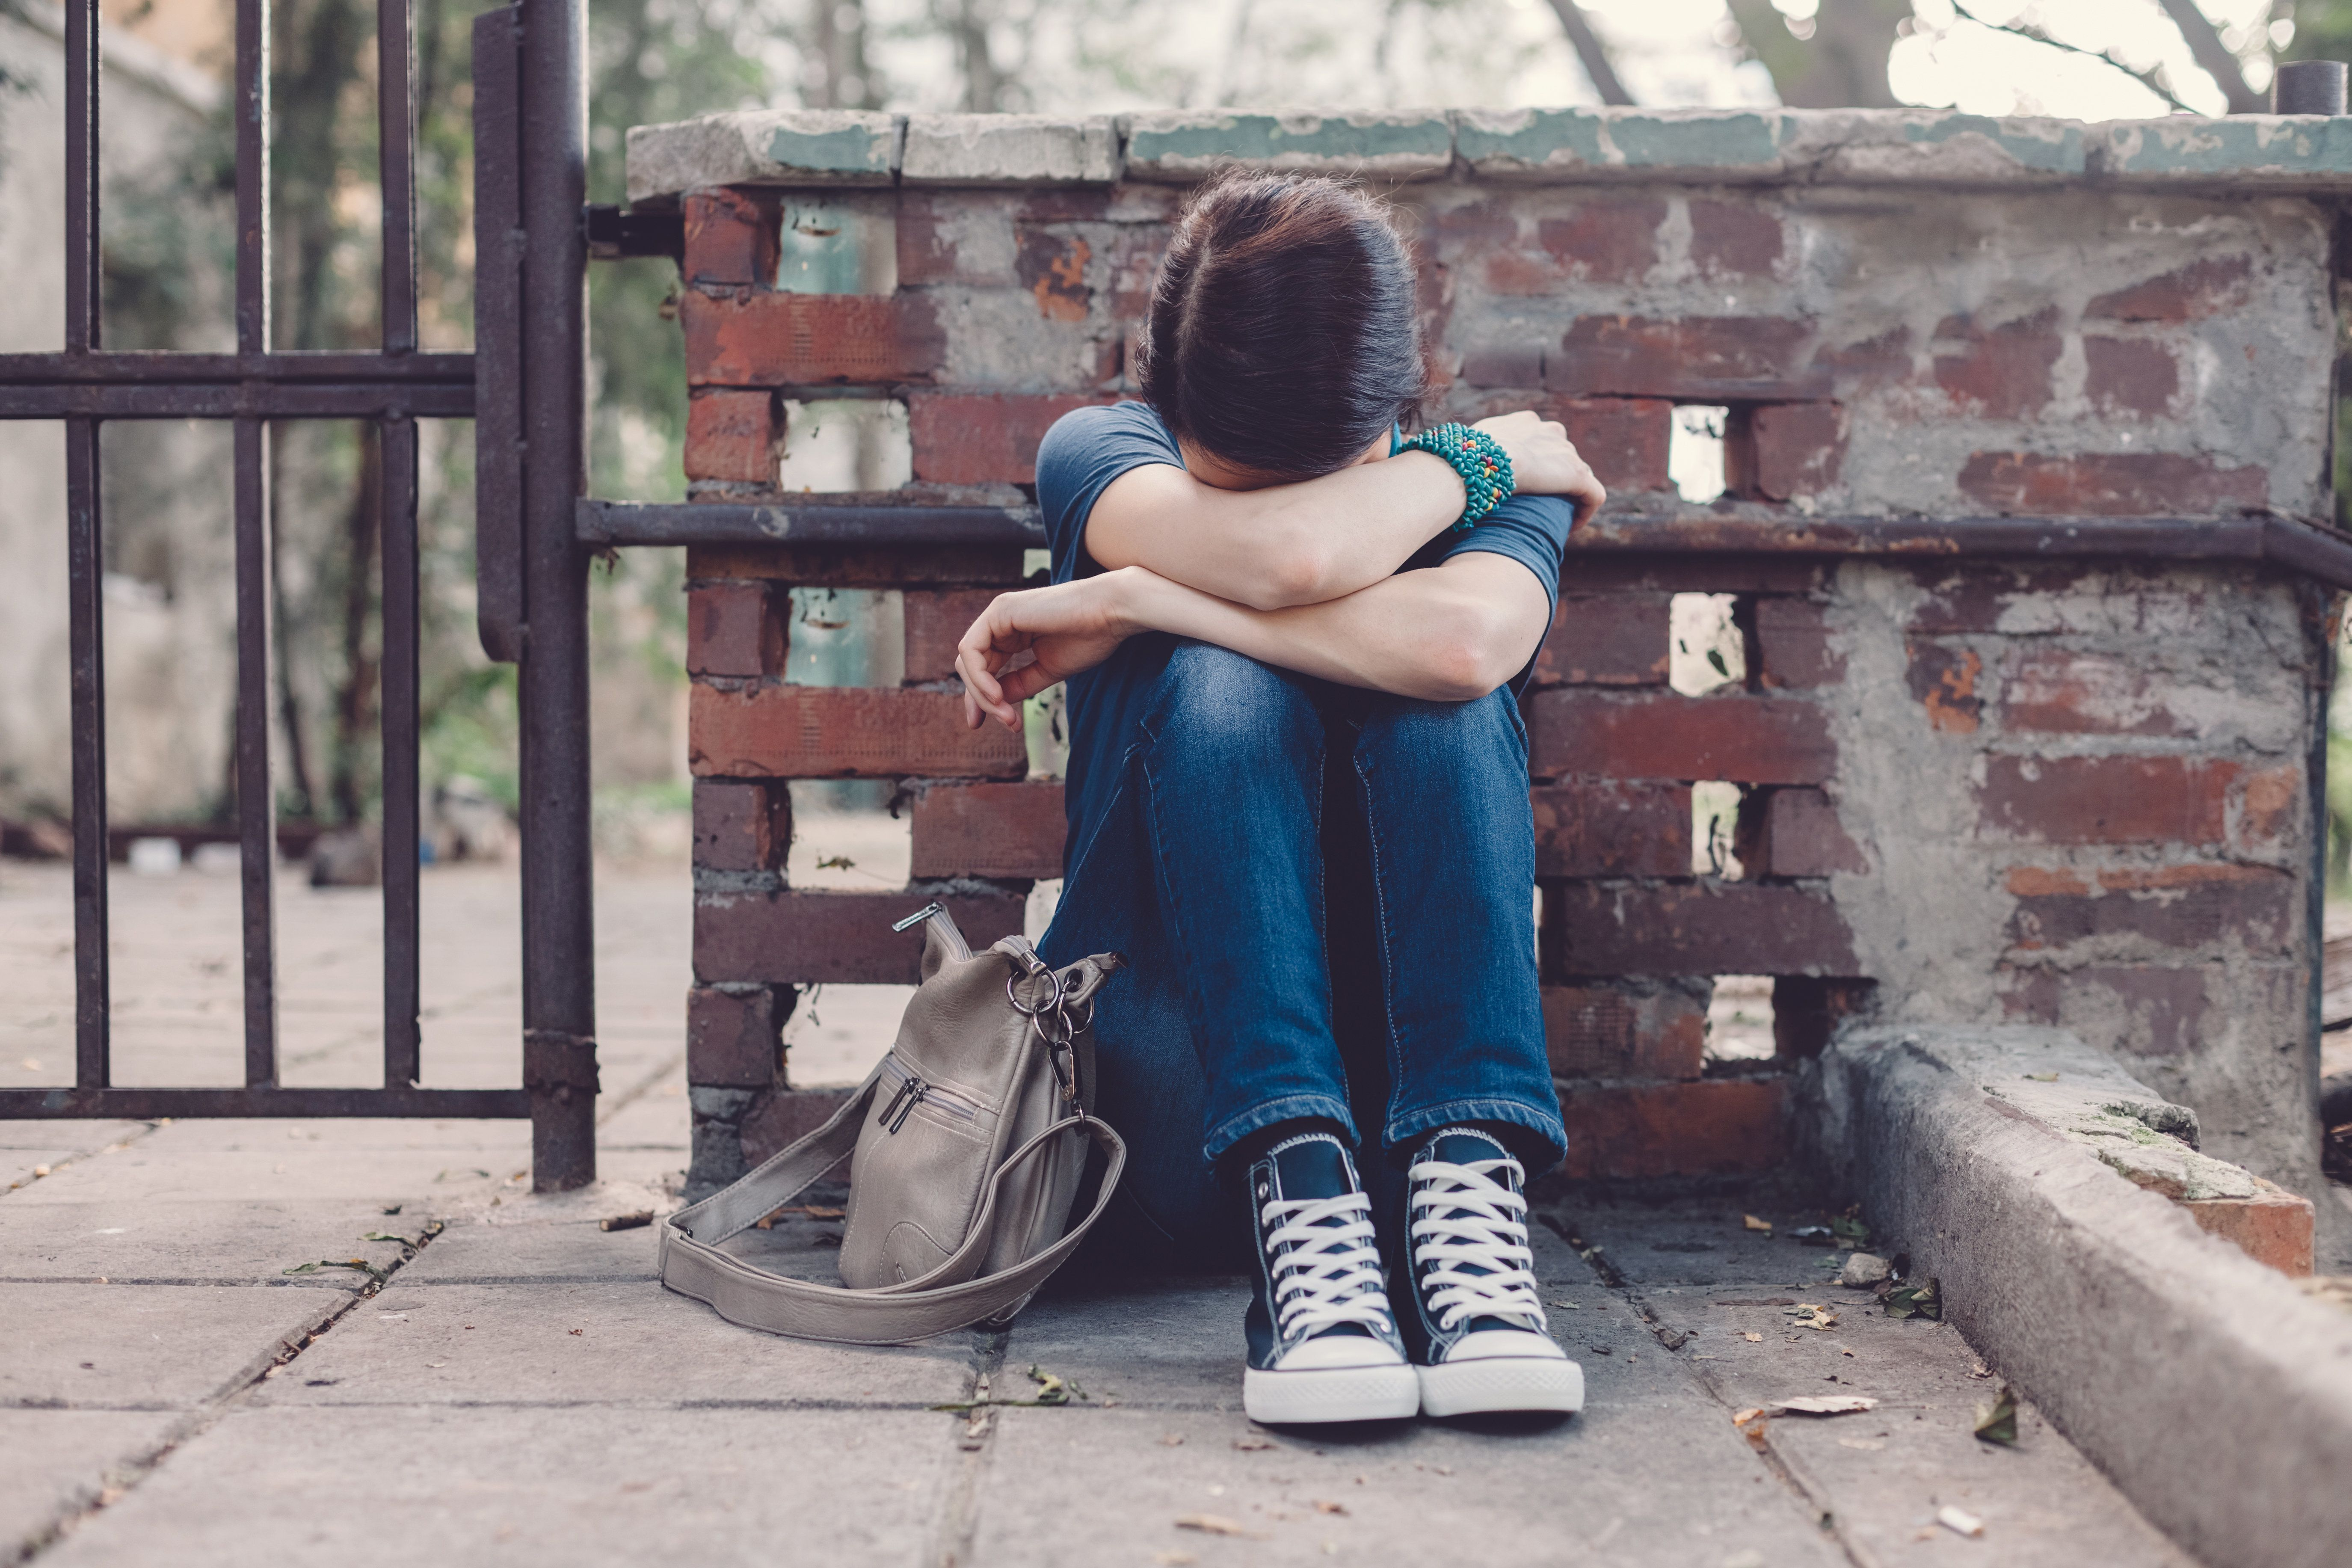 UK teens are some of the least happy in the world, according to a new